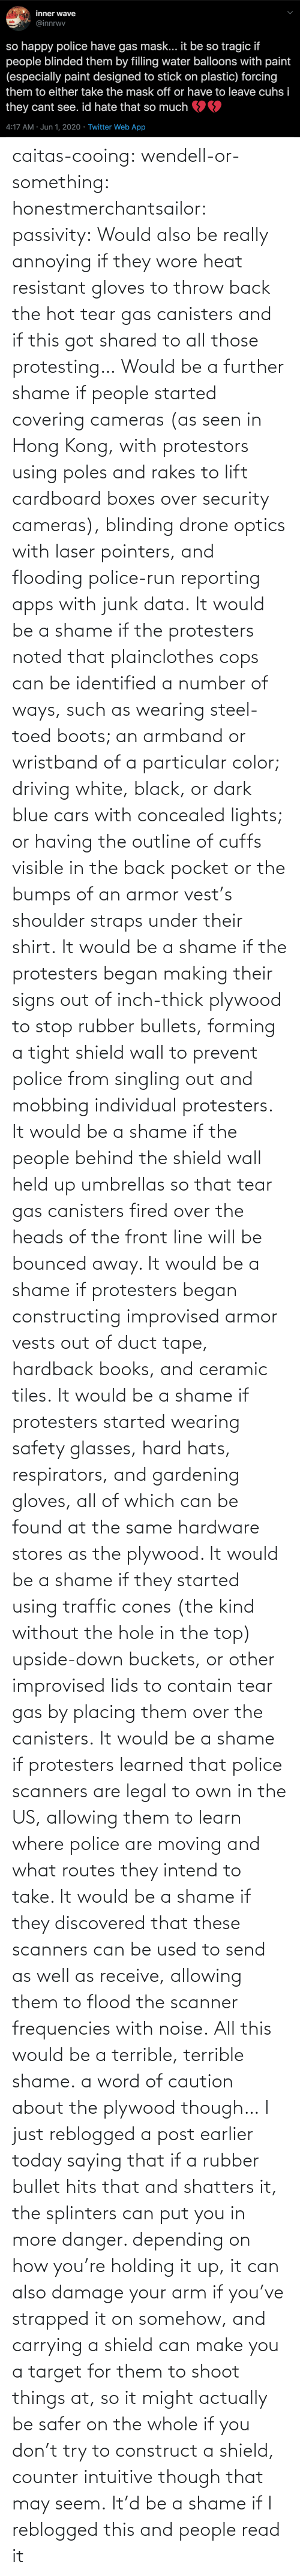 shirt: caitas-cooing:  wendell-or-something: honestmerchantsailor:  passivity: Would also be really annoying if they wore heat resistant gloves to throw back the hot tear gas canisters and if this got shared to all those protesting… Would be a further shame if people started covering cameras (as seen in Hong Kong, with protestors using poles and rakes to lift cardboard boxes over security cameras), blinding drone optics with laser pointers, and flooding police-run reporting apps with junk data. It would be a shame if the protesters noted that plainclothes cops can be identified a number of ways, such as wearing steel-toed boots; an armband or wristband of a particular color; driving white, black, or dark blue cars with concealed lights; or having the outline of cuffs visible in the back pocket or the bumps of an armor vest's shoulder straps under their shirt. It would be a shame if the protesters began making their signs out of inch-thick plywood to stop rubber bullets, forming a tight shield wall to prevent police from singling out and mobbing individual protesters. It would be a shame if the people behind the shield wall held up umbrellas so that tear gas canisters fired over the heads of the front line will be bounced away. It would be a shame if protesters began constructing improvised armor vests out of duct tape, hardback books, and ceramic tiles. It would be a shame if protesters started wearing safety glasses, hard hats, respirators, and gardening gloves, all of which can be found at the same hardware stores as the plywood. It would be a shame if they started using traffic cones (the kind without the hole in the top) upside-down buckets, or other improvised lids to contain tear gas by placing them over the canisters. It would be a shame if protesters learned that police scanners are legal to own in the US, allowing them to learn where police are moving and what routes they intend to take. It would be a shame if they discovered that these scanners can be used to send as well as receive, allowing them to flood the scanner frequencies with noise. All this would be a terrible, terrible shame.    a word of caution about the plywood though… I just reblogged a post earlier today saying that if a rubber bullet hits that and shatters it, the splinters can put you in more danger. depending on how you're holding it up, it can also damage your arm if you've strapped it on somehow, and carrying a shield can make you a target for them to shoot things at, so it might actually be safer on the whole if you don't try to construct a shield, counter intuitive though that may seem.    It'd be a shame if I reblogged this and people read it